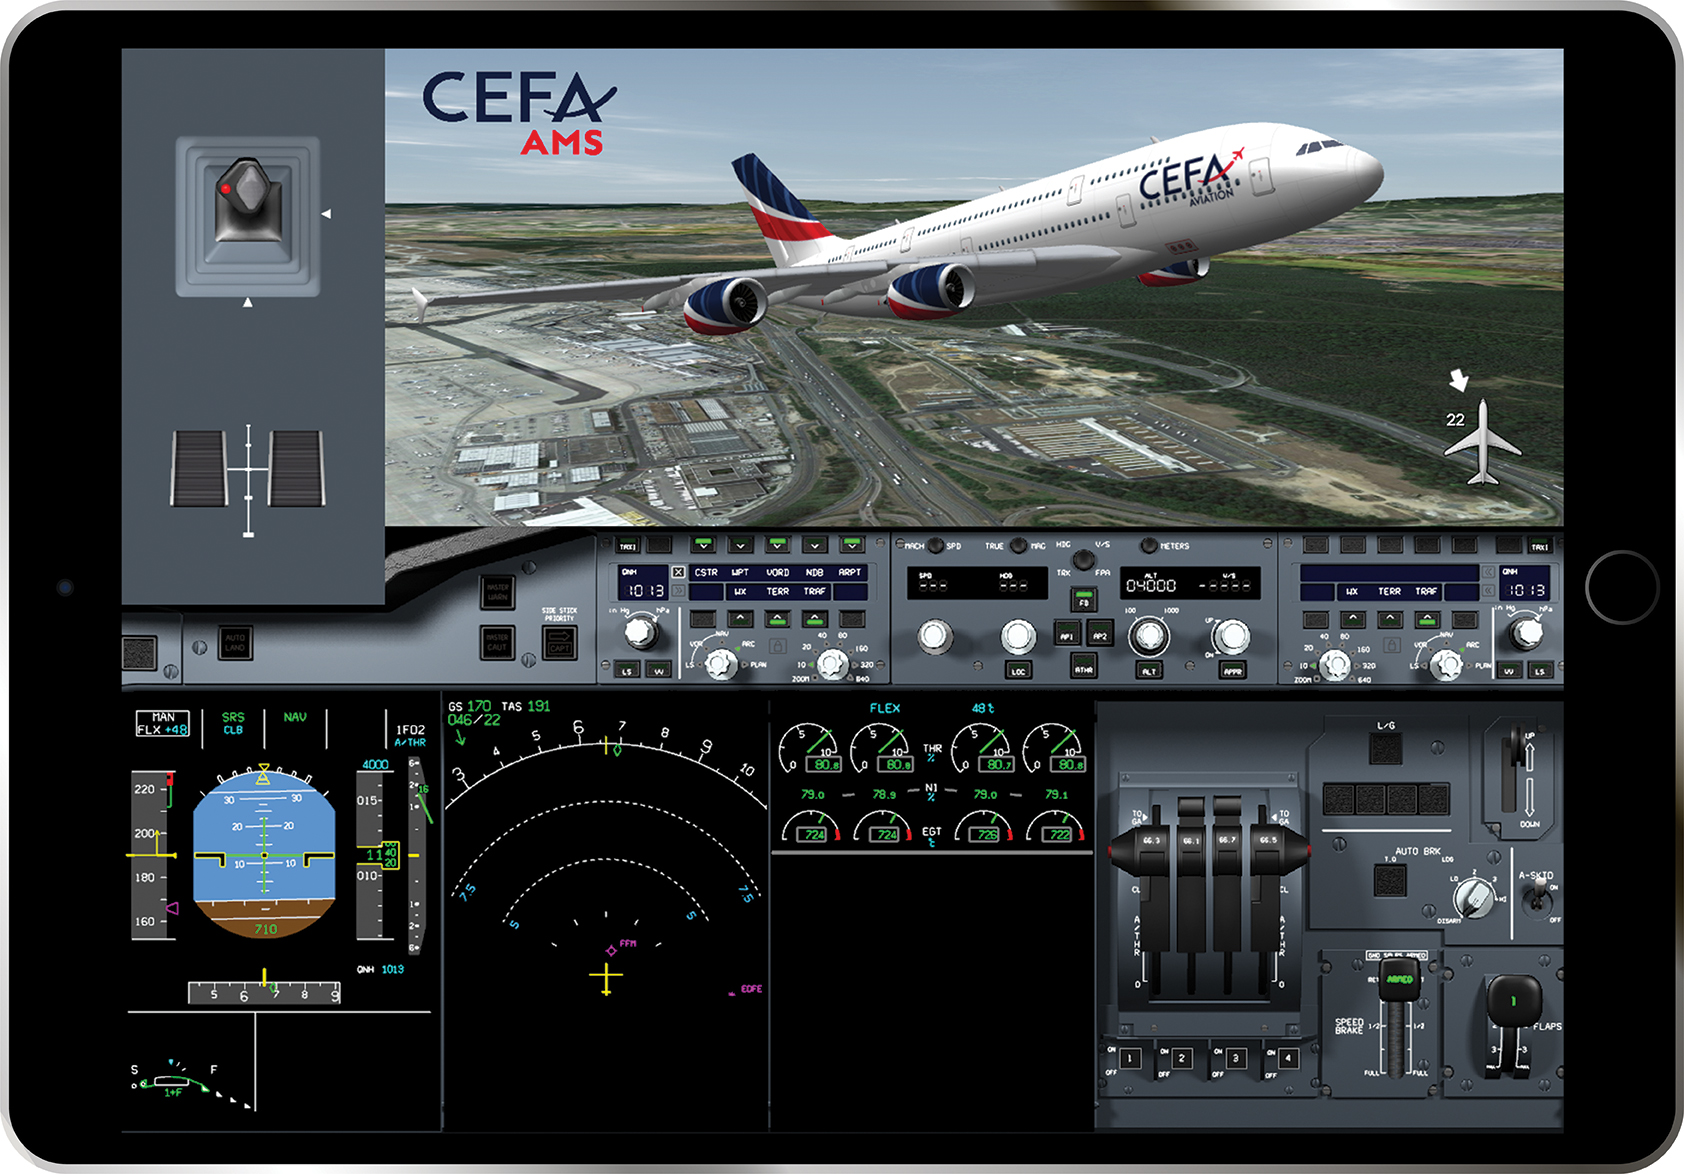 A world premiere: Pilot training feedback right after landing with CEFA AMS (Aviation Mobile Services)